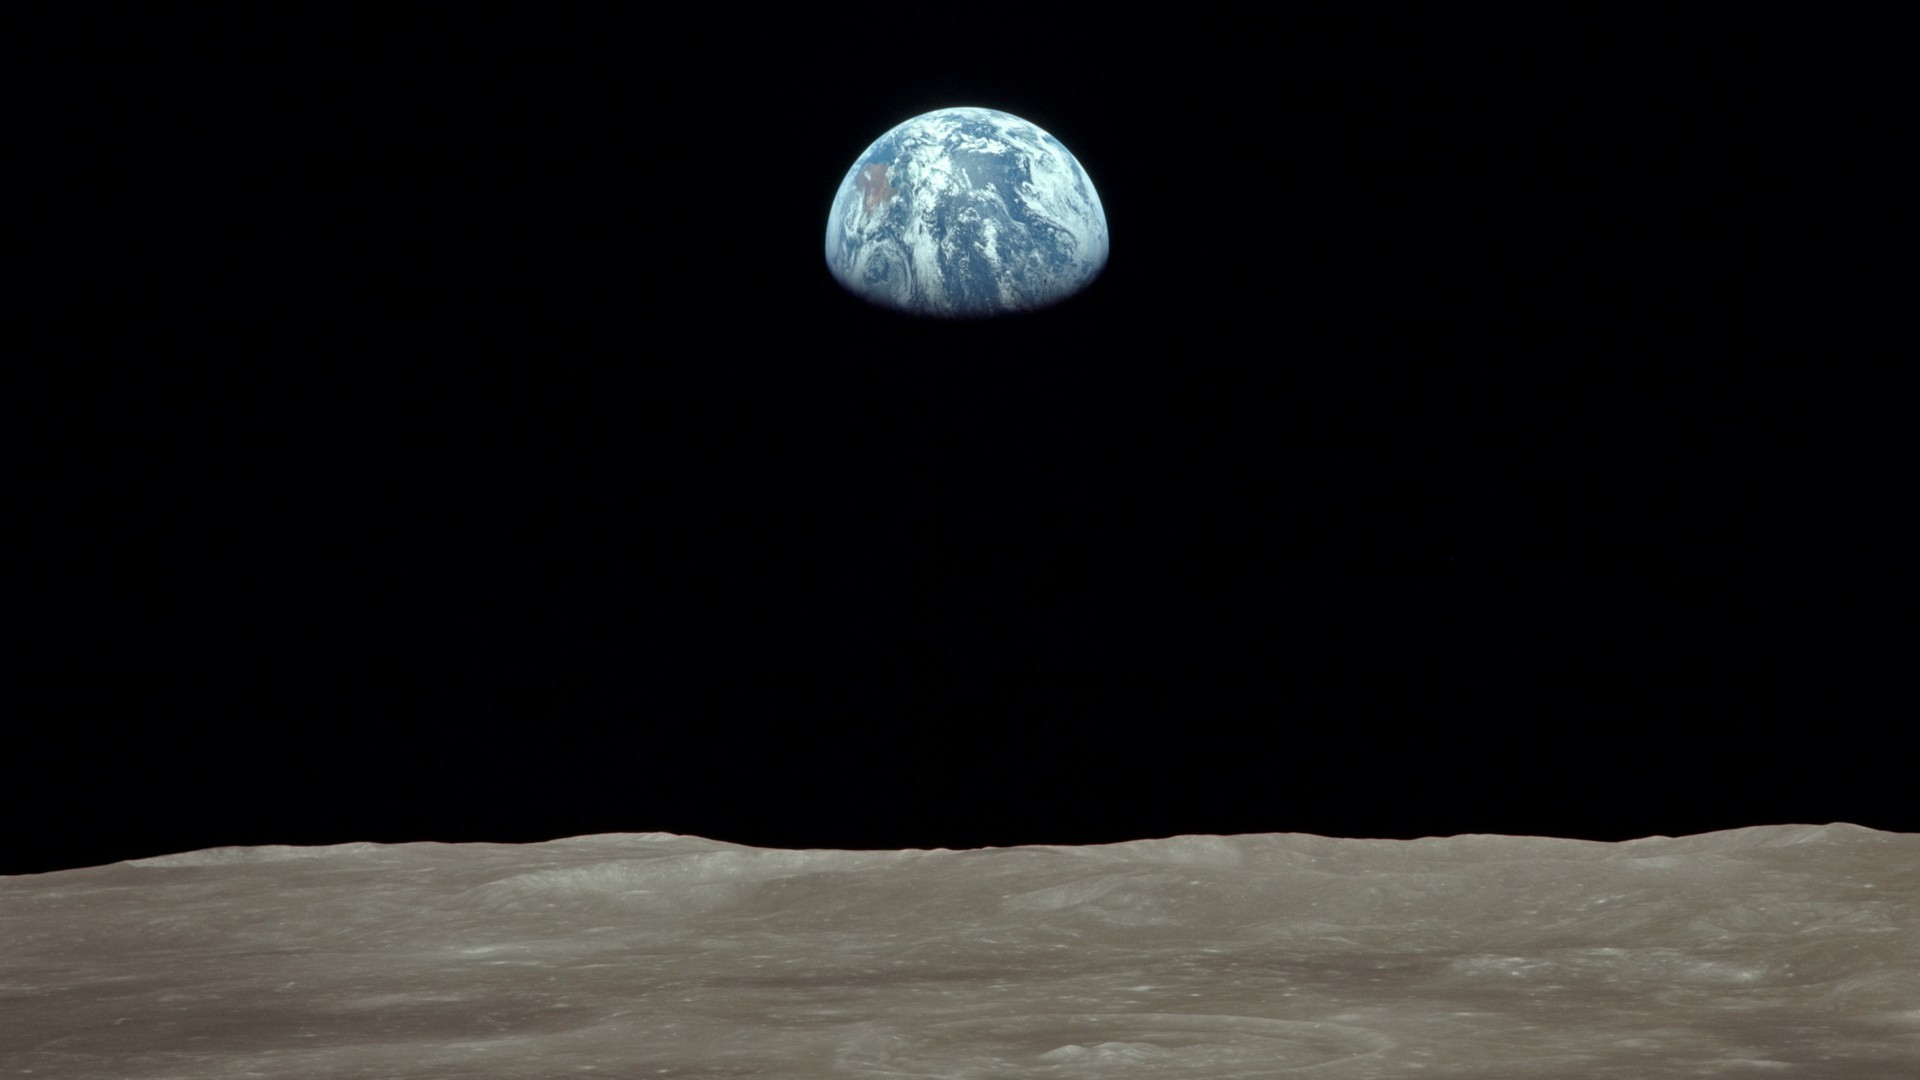 earth from the moon nasa - photo #33